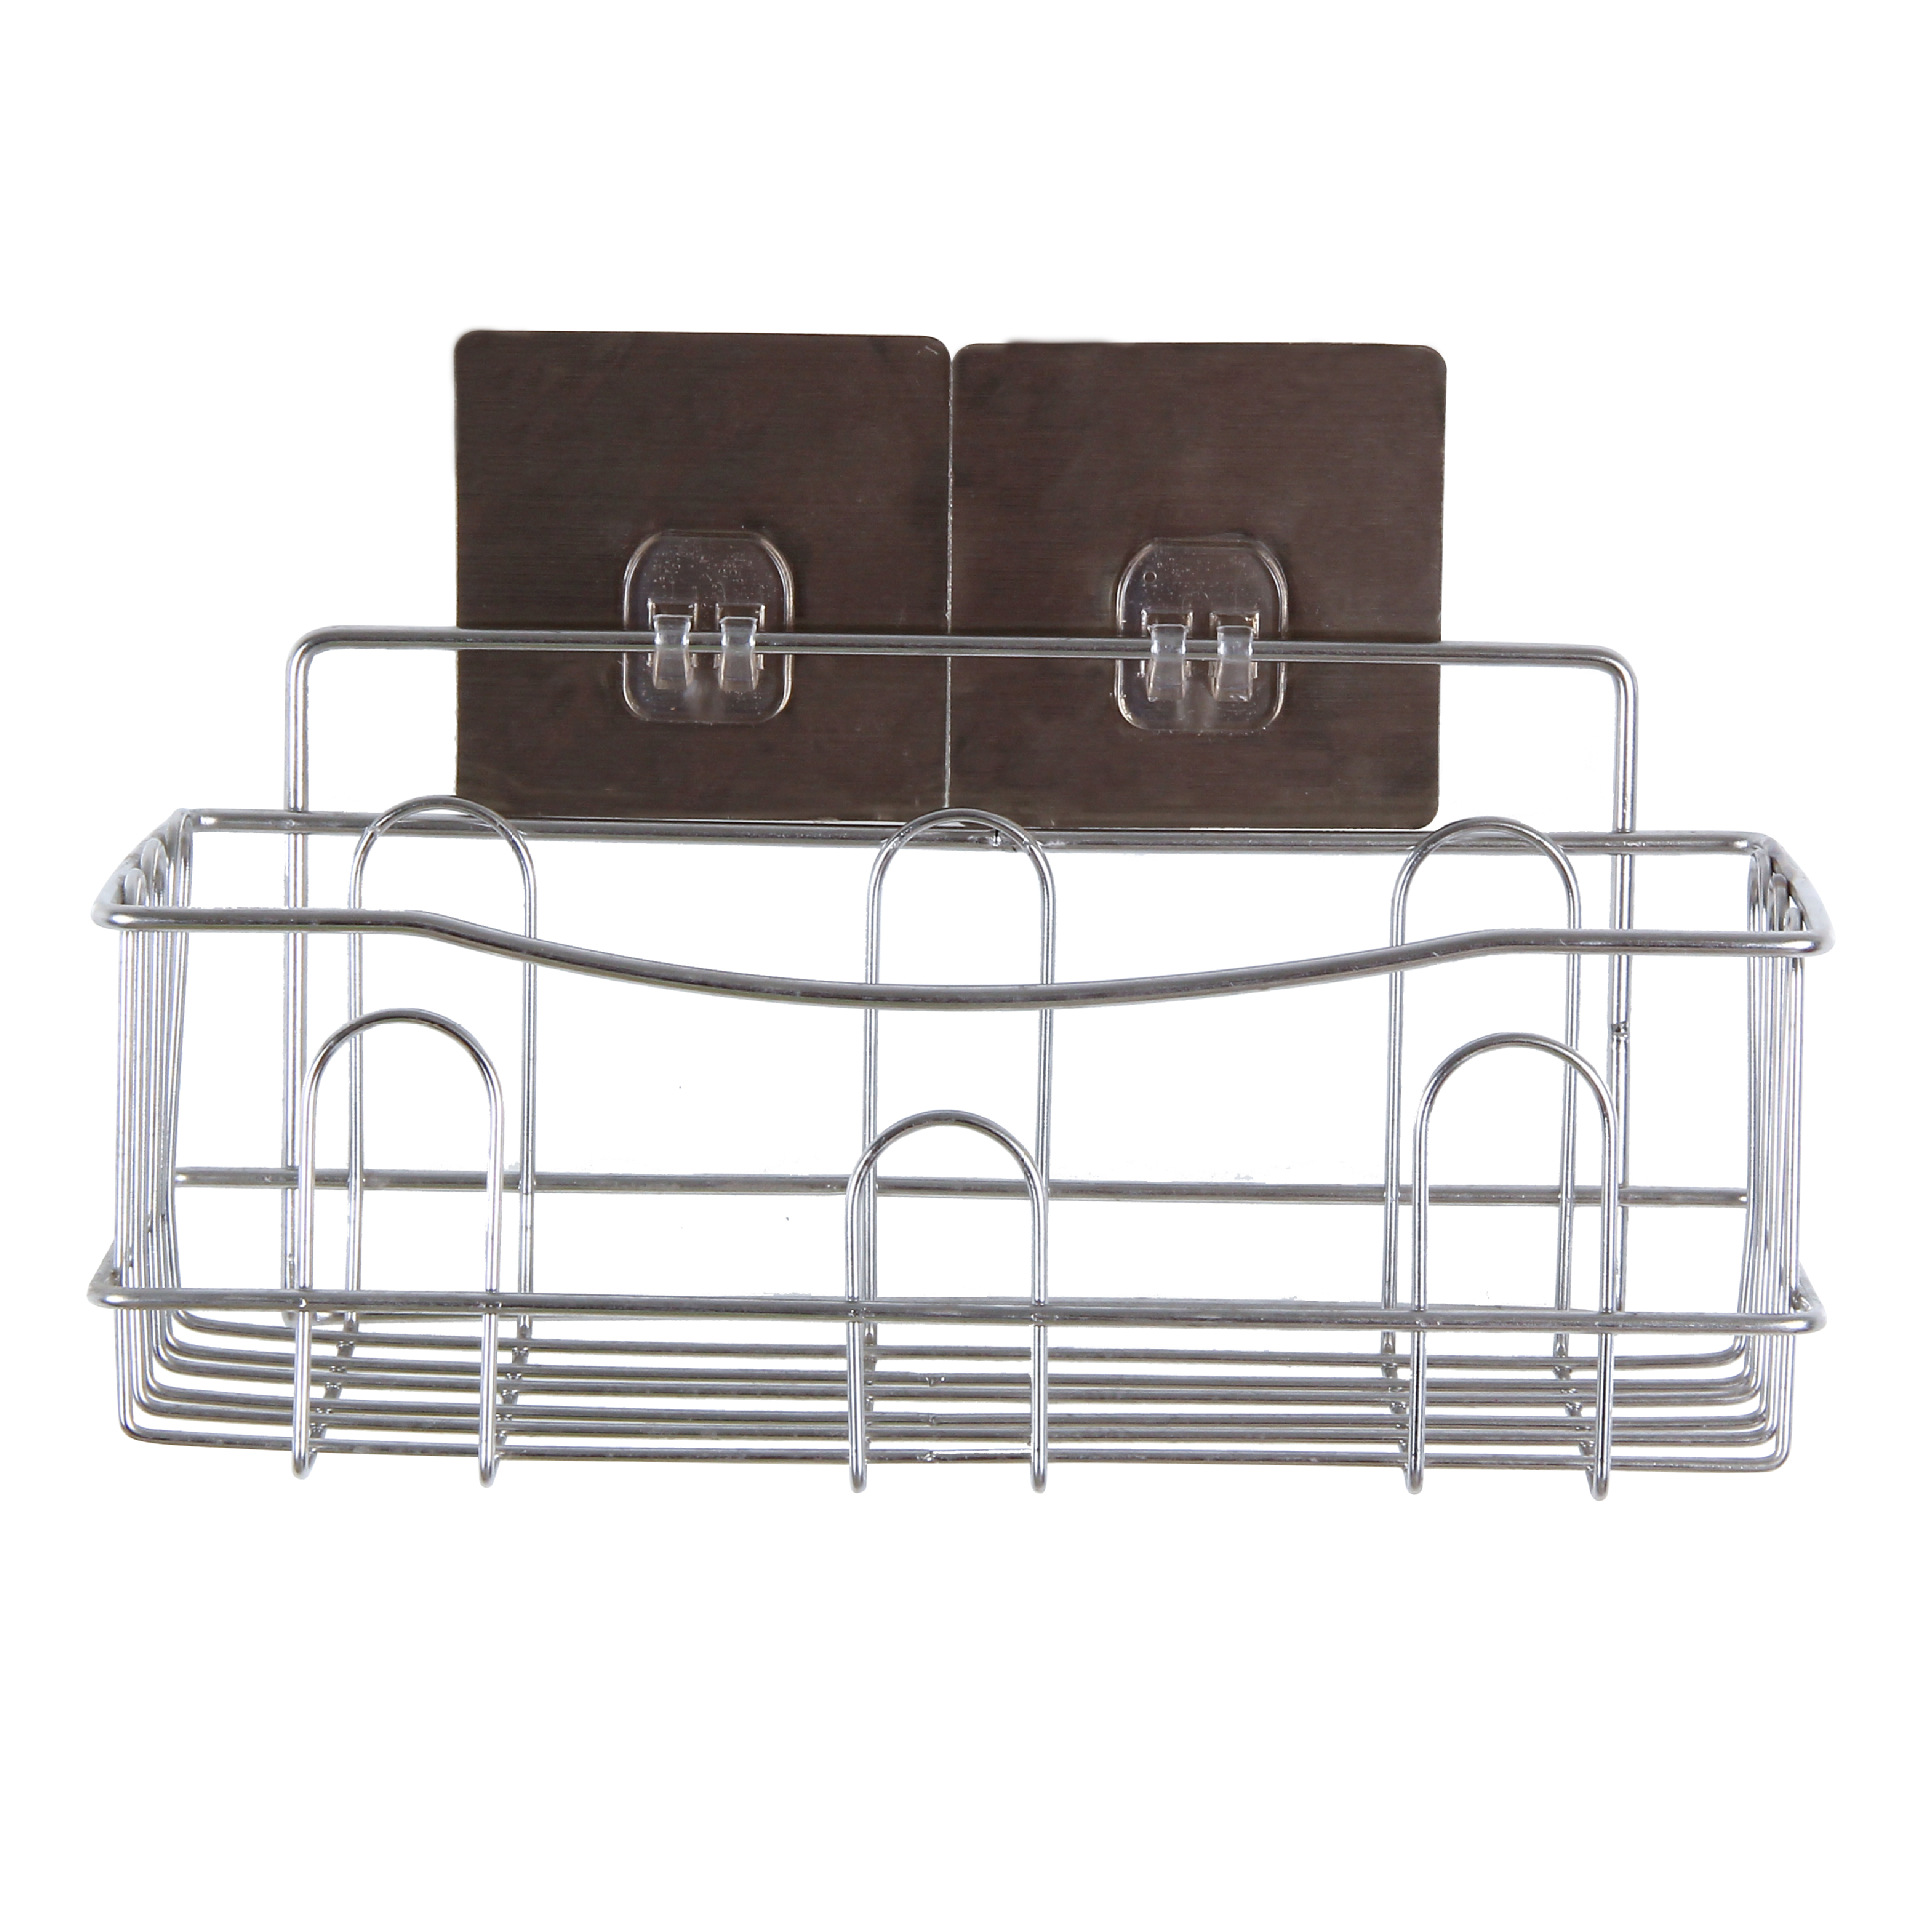 Image 5 - Cross border Dedicated For Punch free Wall Hanging Bathroom Shelf Stainless Steel Single layer Rack Kitchen Storage-in Bathroom Accessories Sets from Home & Garden